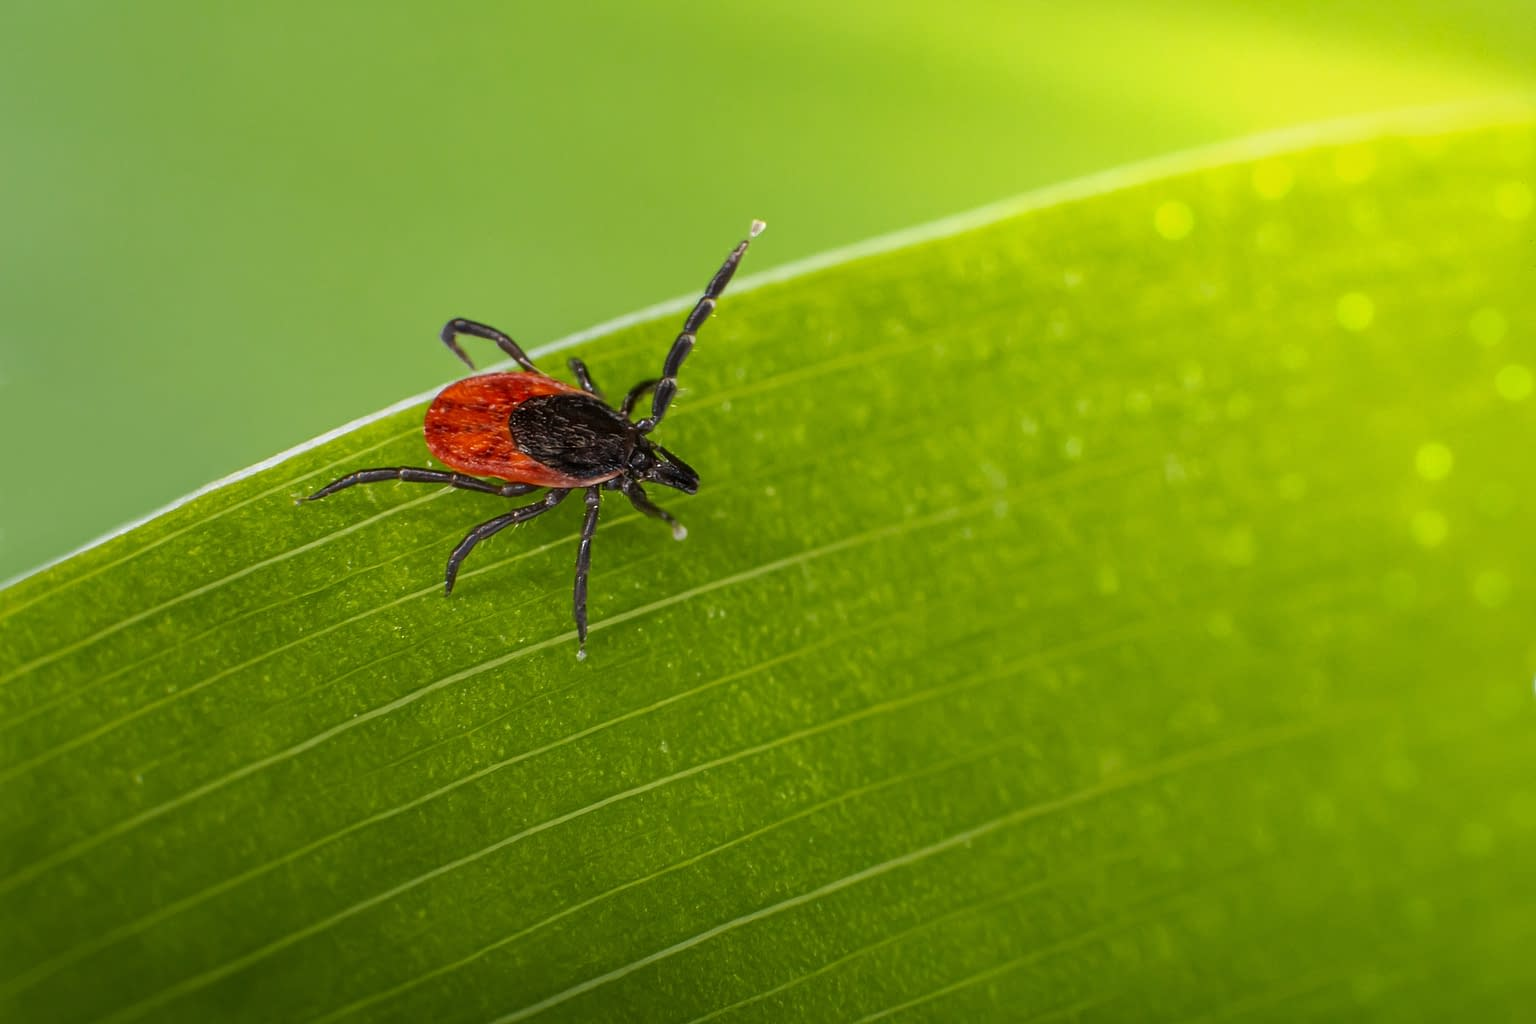 tick control services to residential customers throughout New Haven, Fairfield County and Hartford Counties.